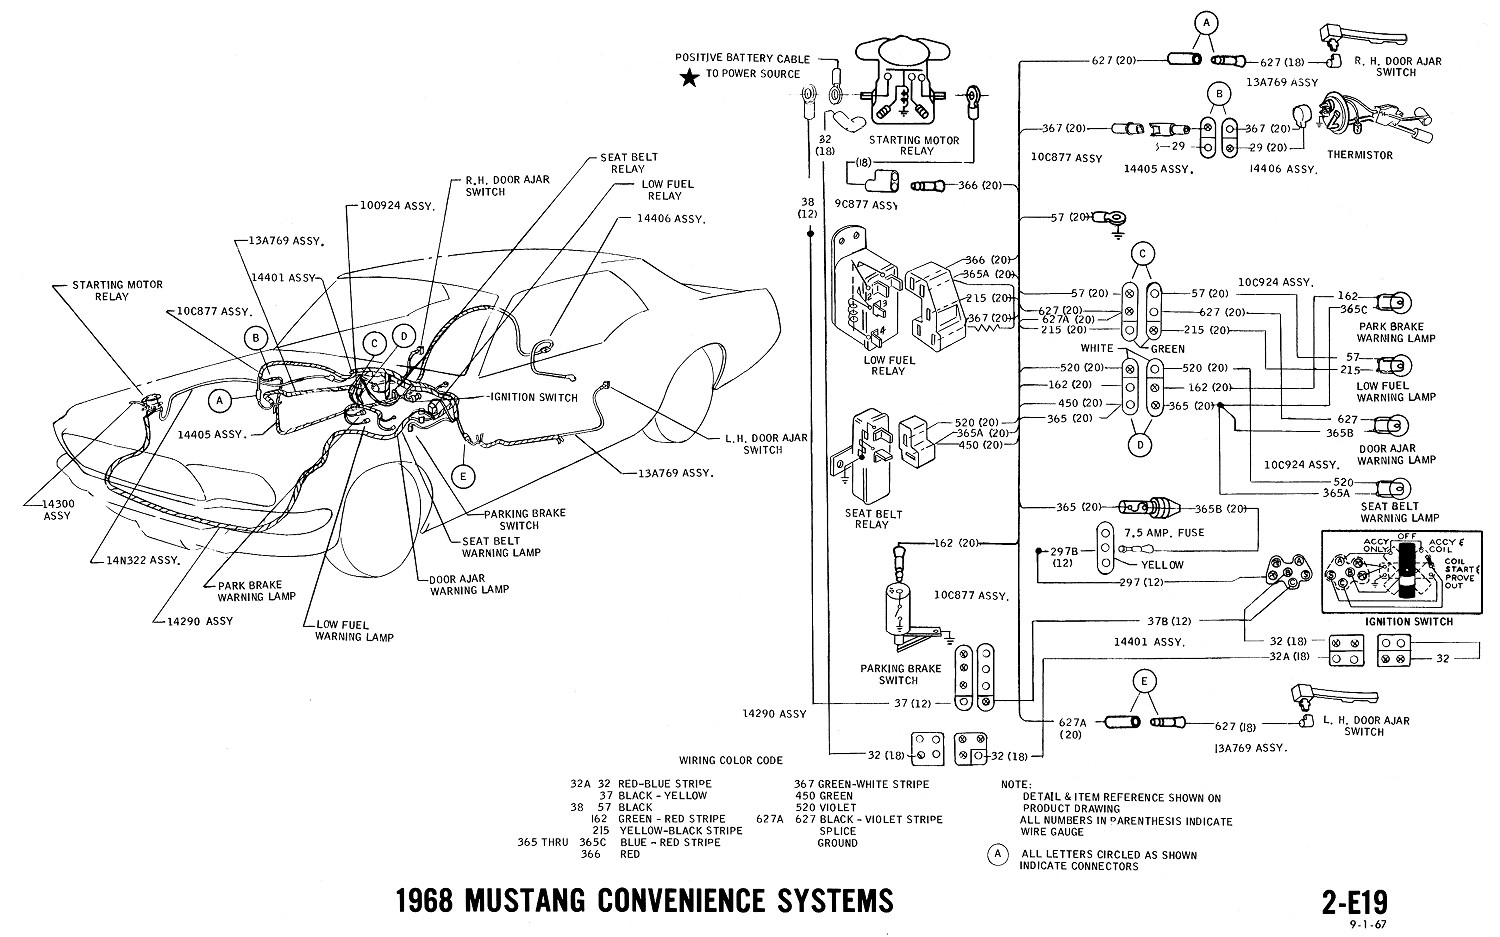 1968 Mustang Wiring Diagrams : Evolving Software